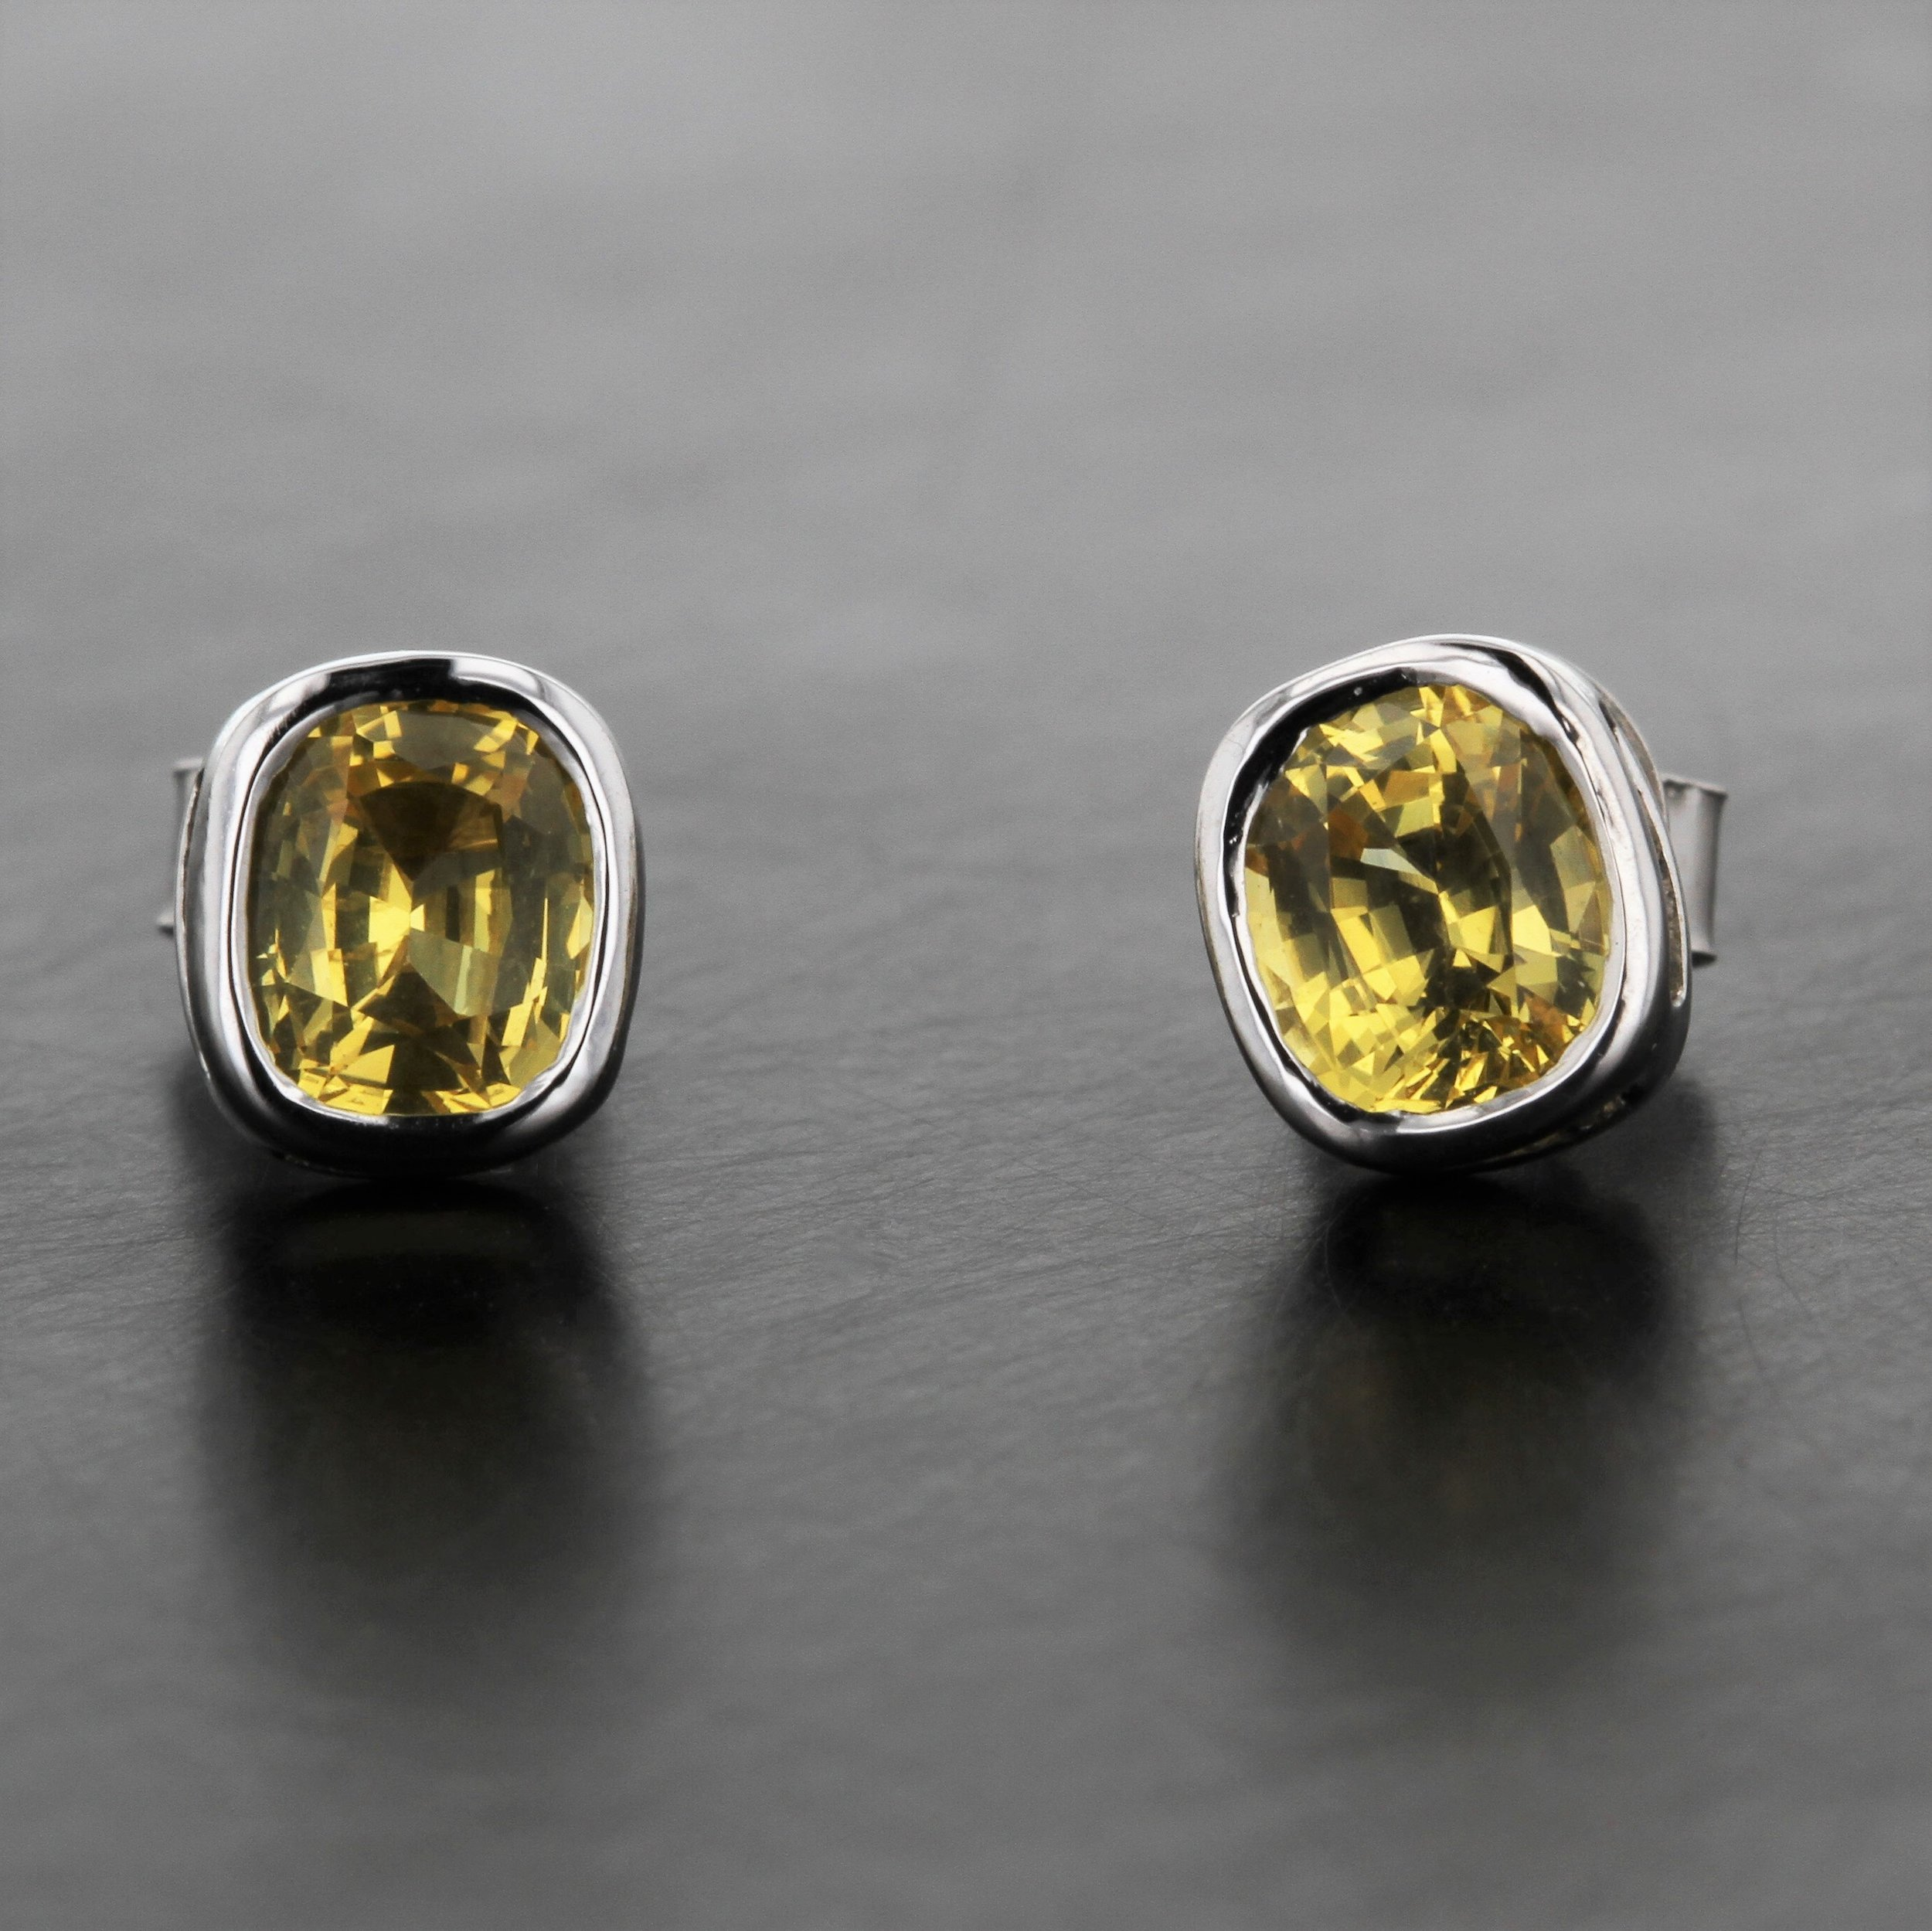 yellow-cushion-cut-sapphire-white-gold-bezel-set-custom-stud-earrings.jpg